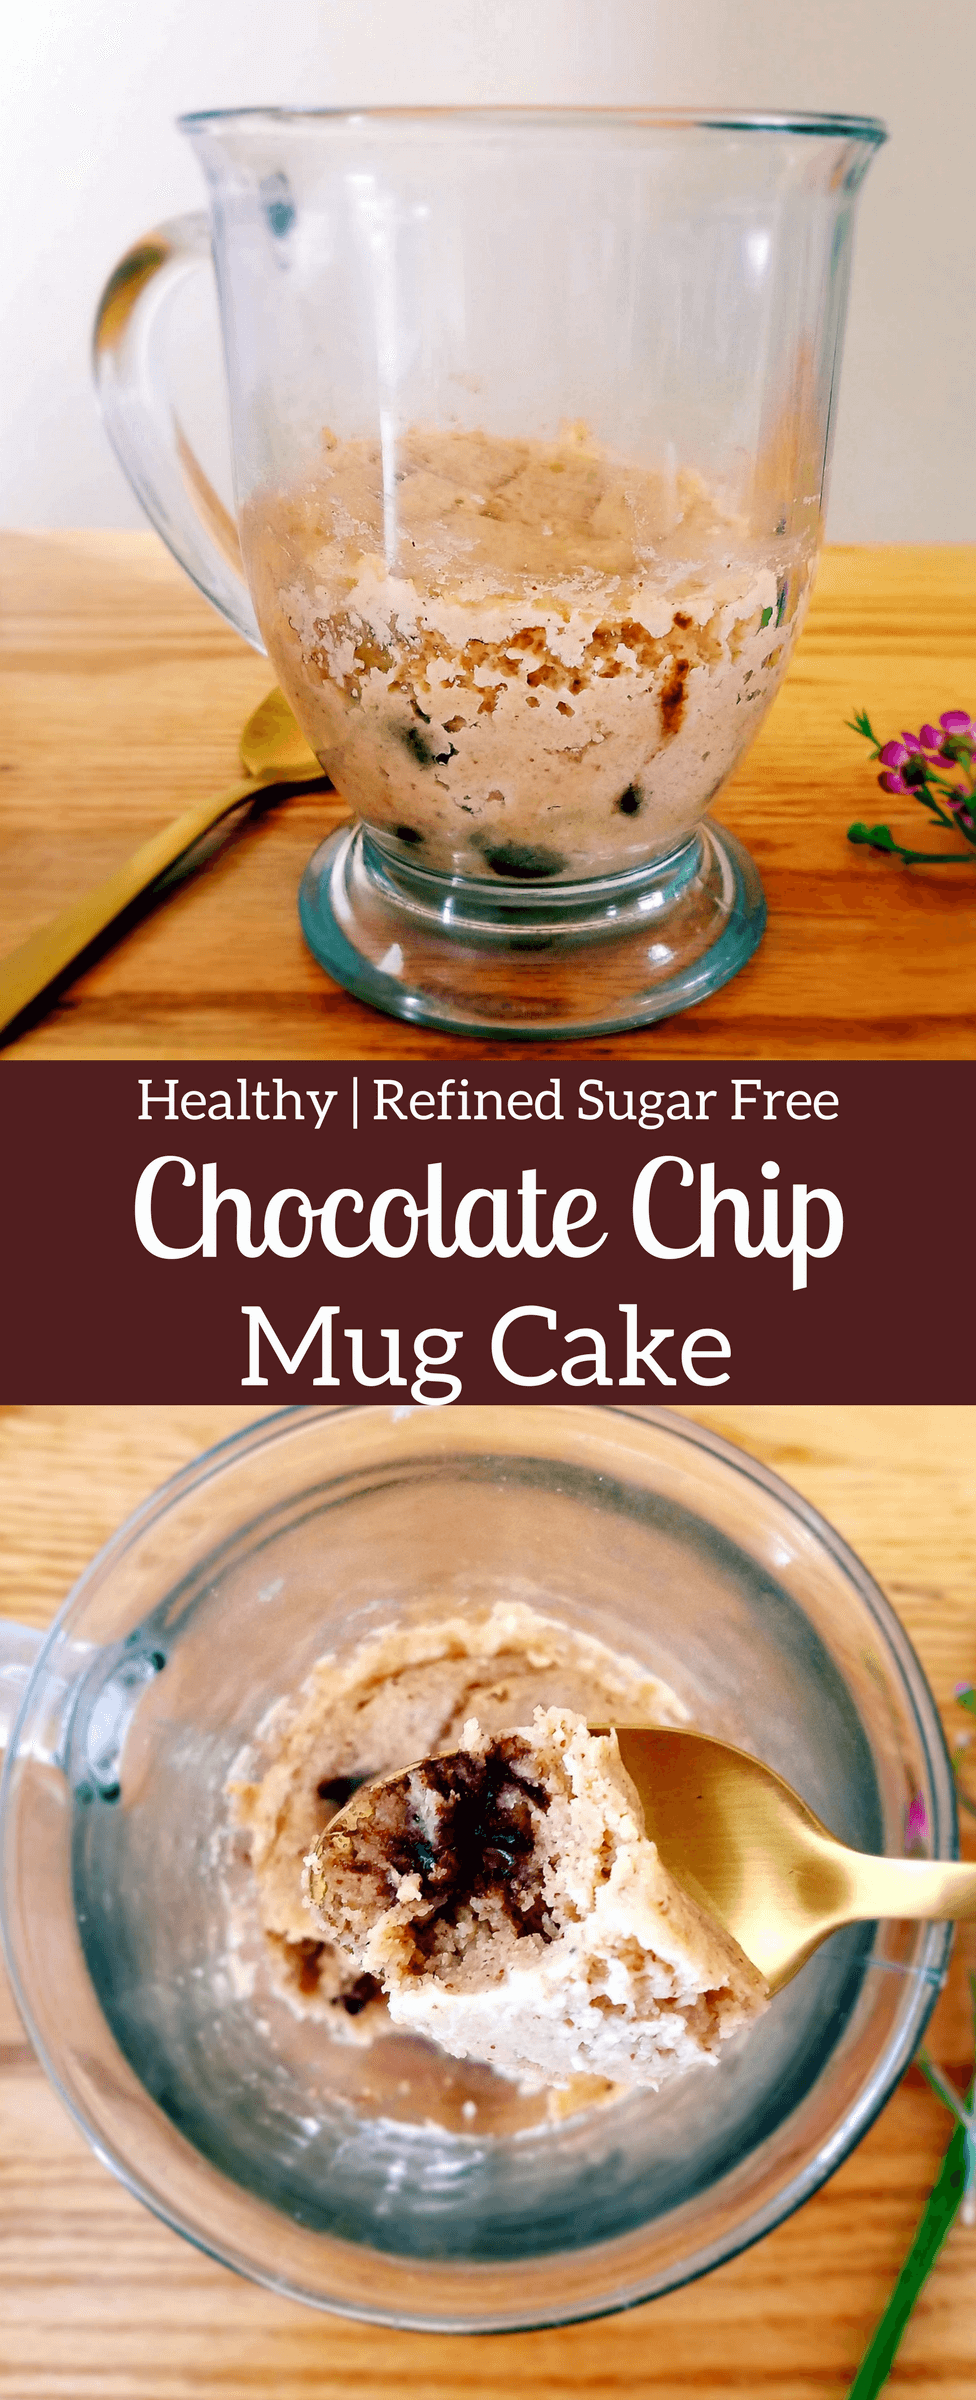 Mug Cakes Two Ways | Recipe (With images) | Chocolate chip ...